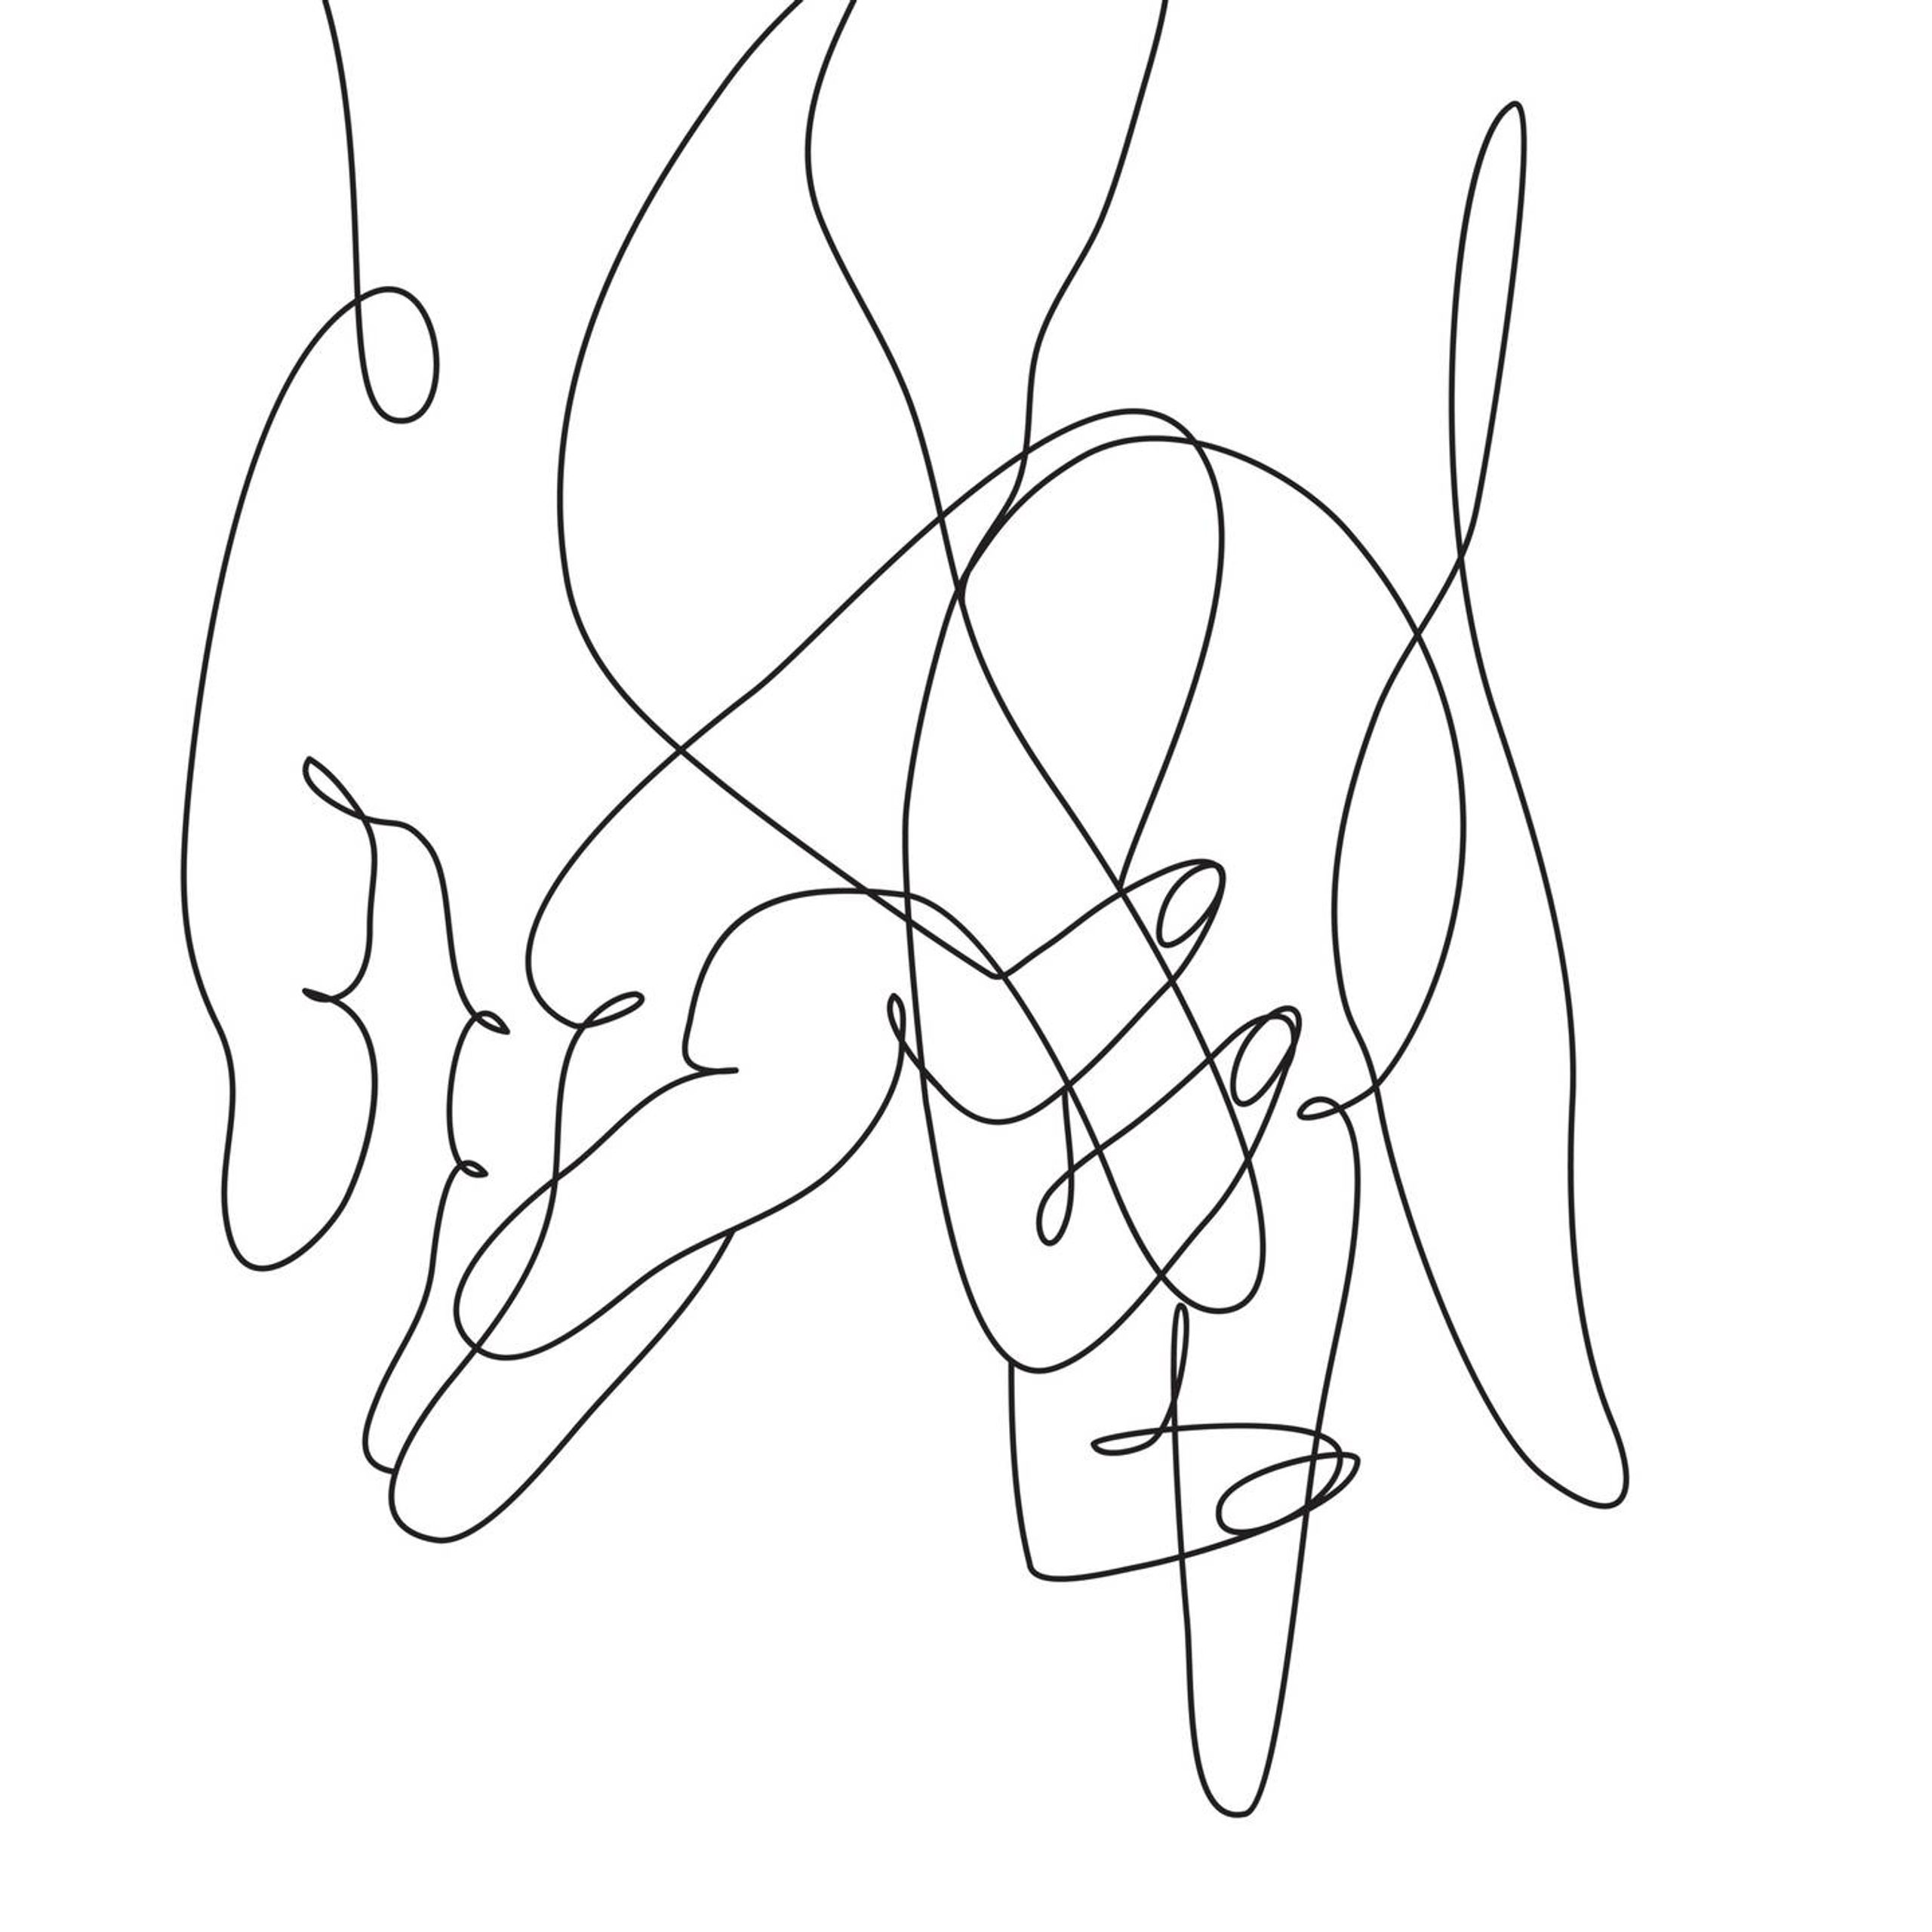 Line drawing illustration of two hands intertwined, non-monogamous, Rewire